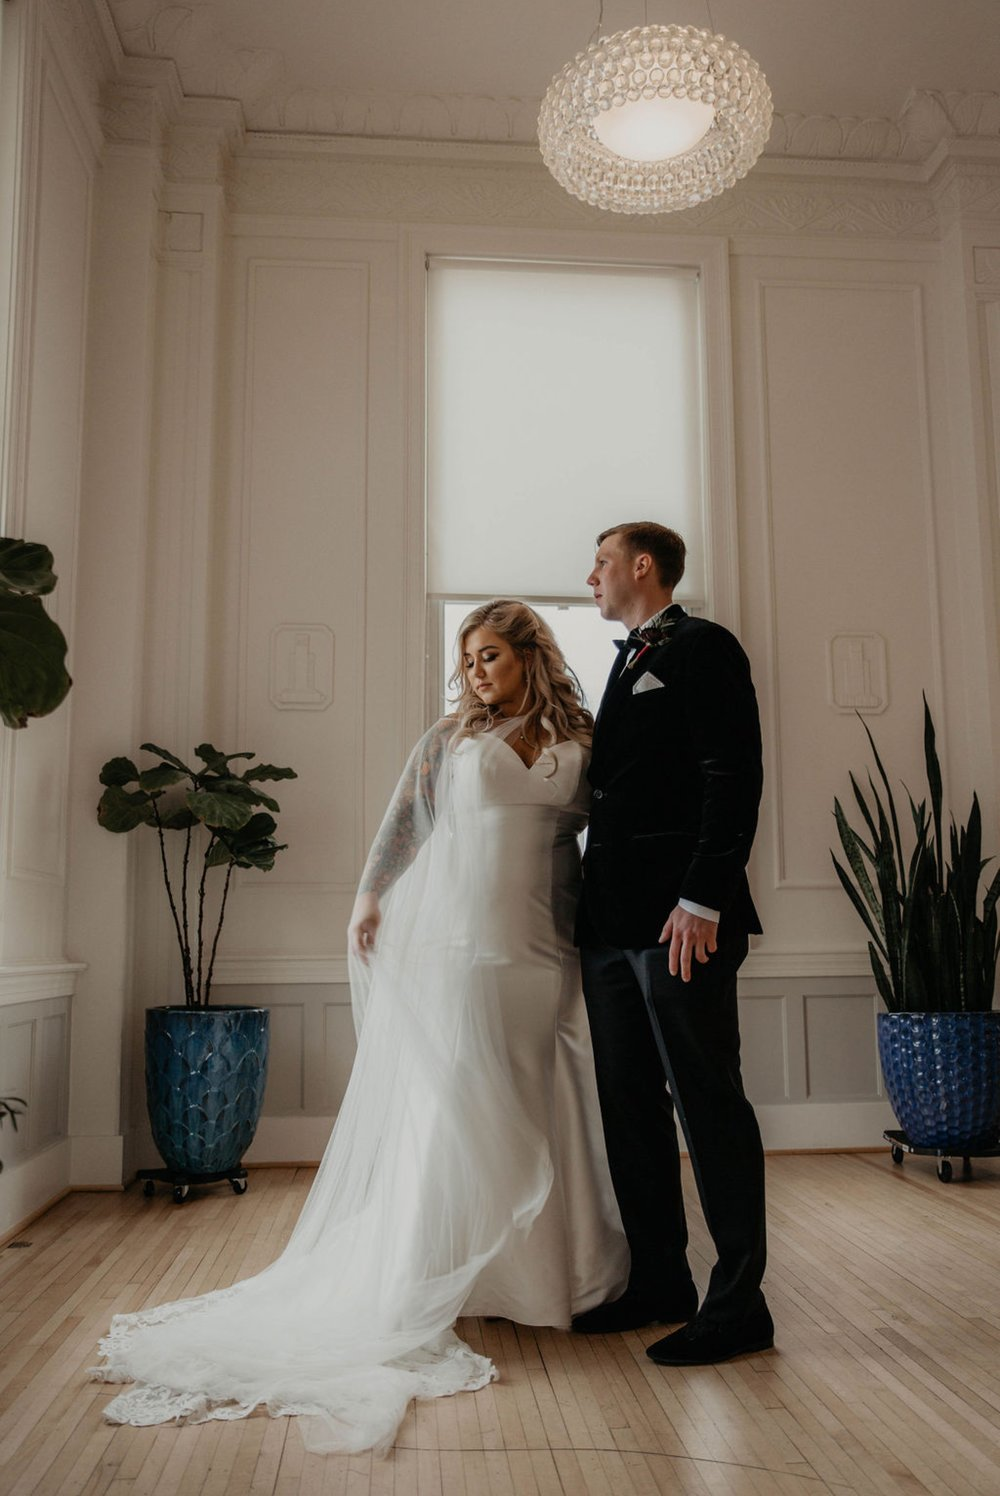 Bride and Groom at the Cannon Room looking out the window for a indoor portrait - Bride in an Allure Bridals Mermaid Gown - Matt Smarsh and Johanna Dye - suites by the black tux - Raleigh North Carolina Urban Edgy Downtown Wedding - suits by the black tux